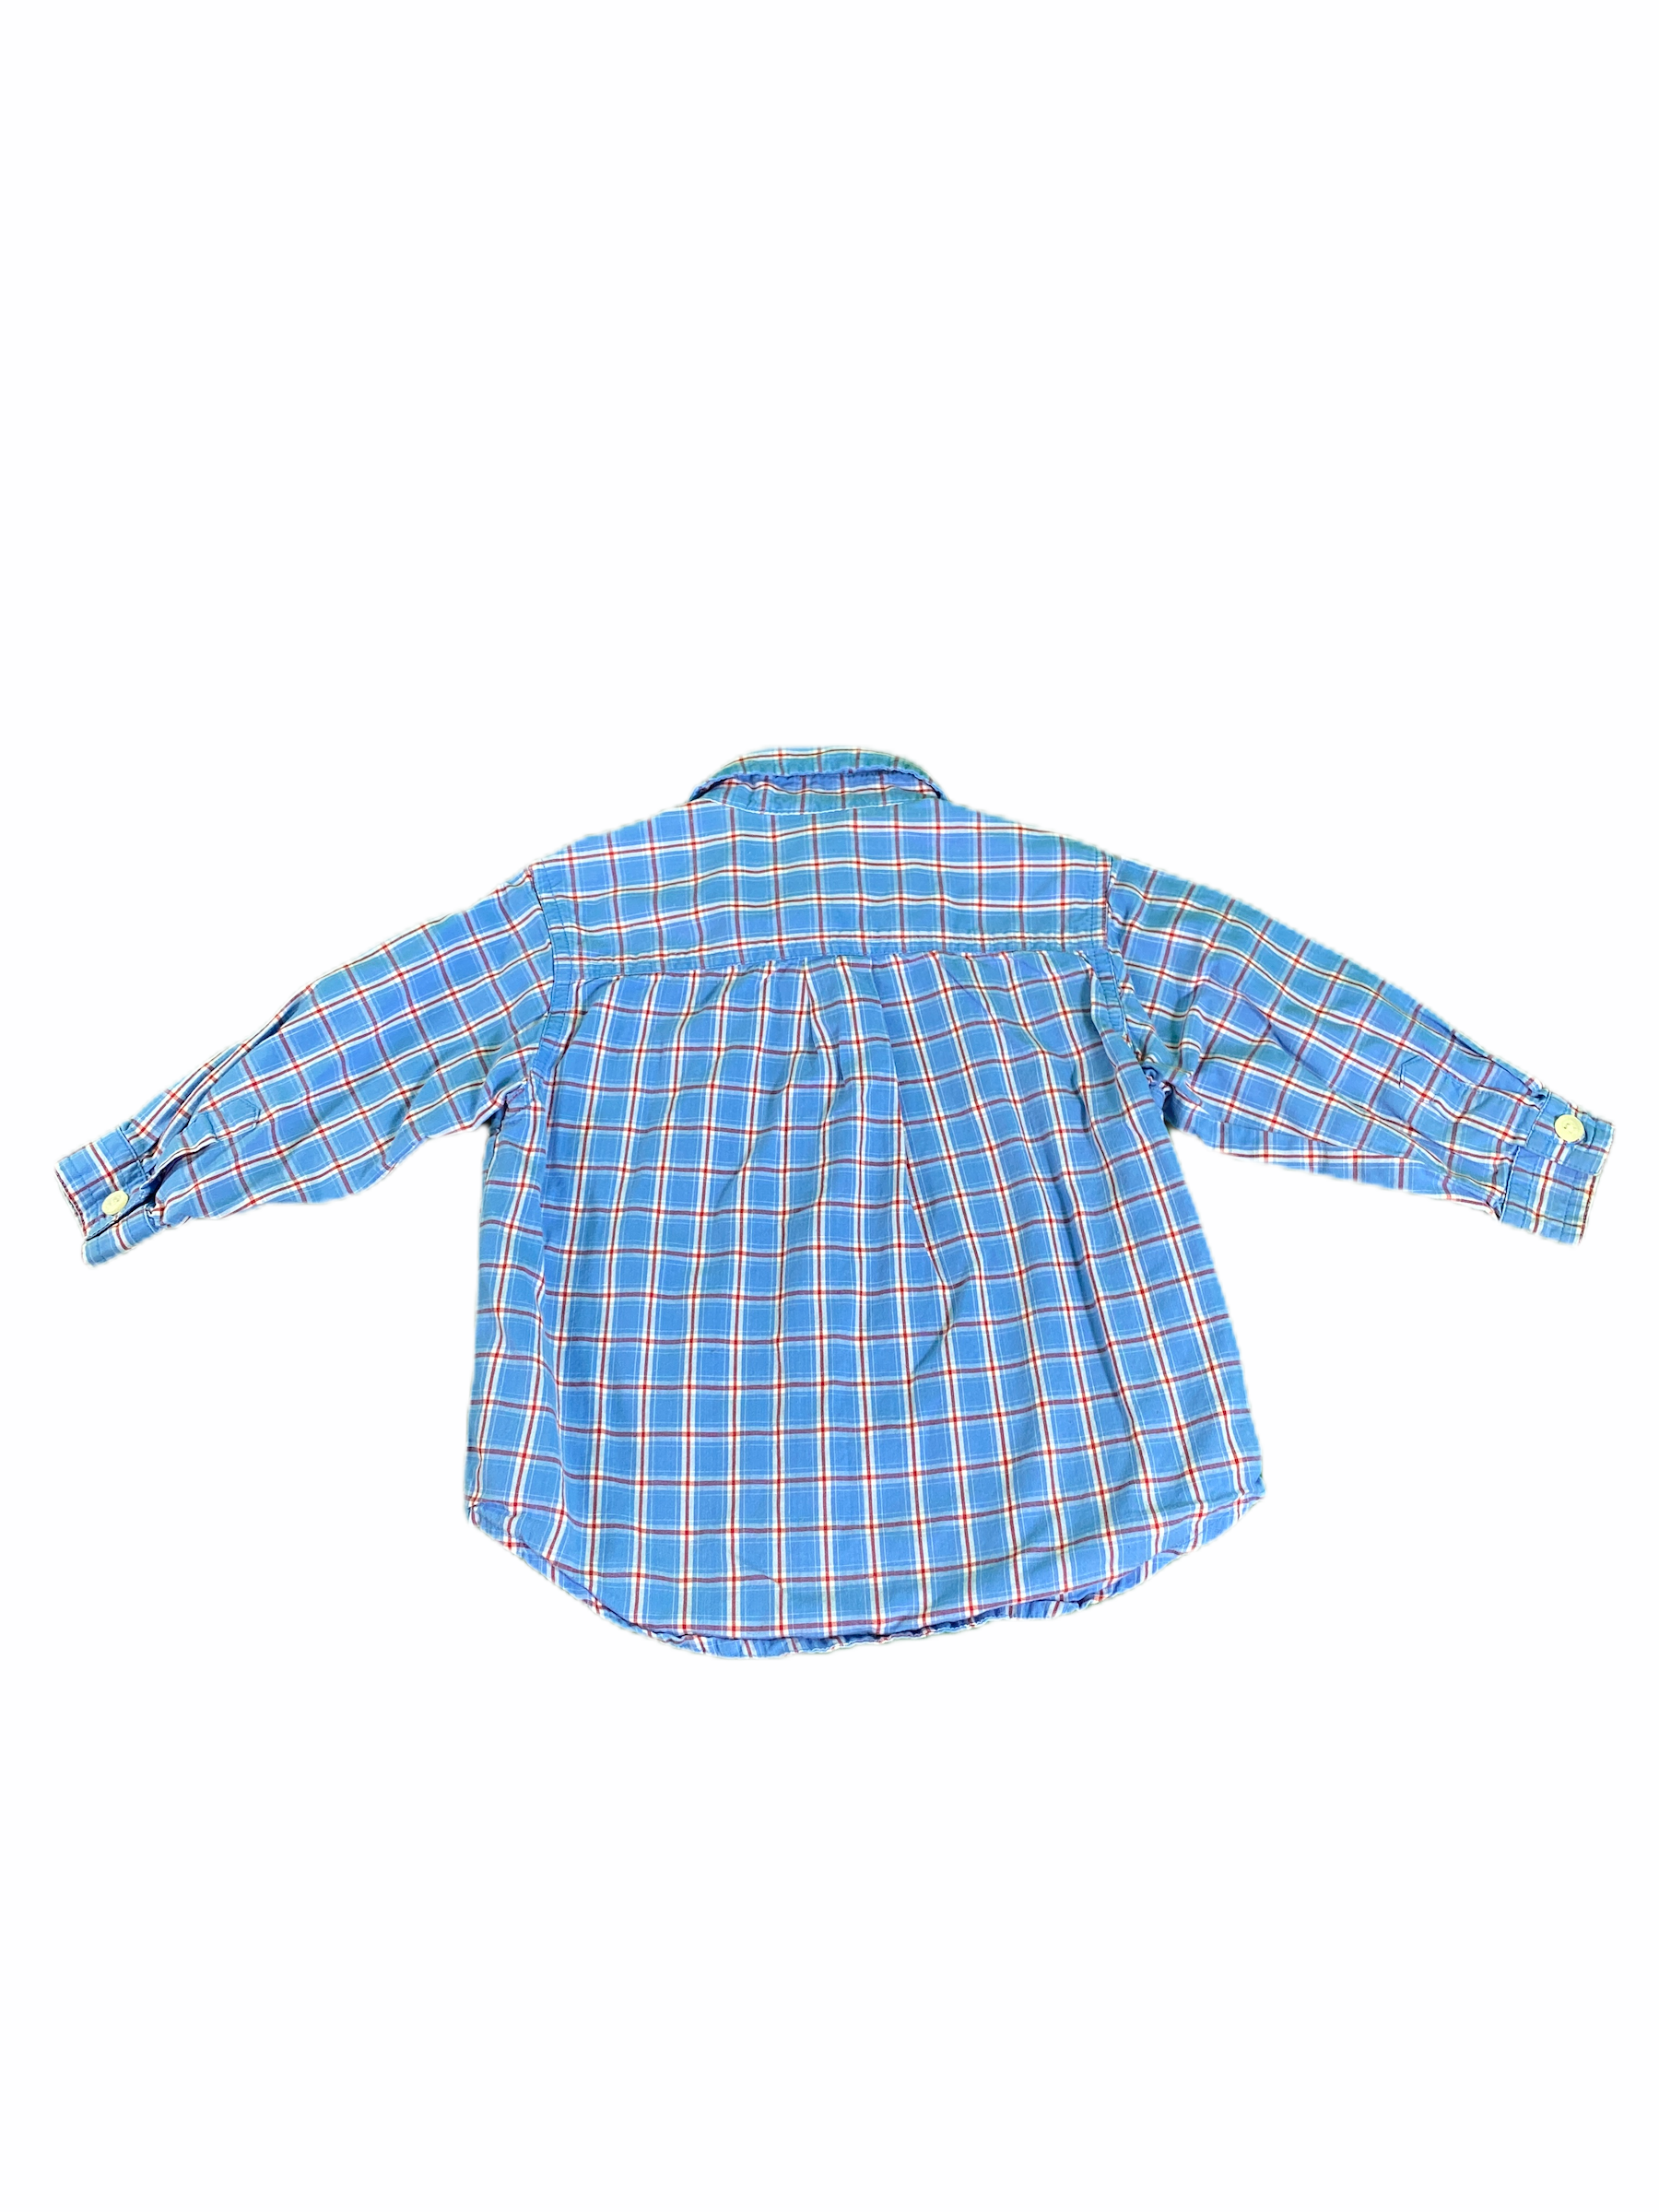 Old Navy Long Sleeve Blue & Green Gingham Button Down (12/18M Boys)